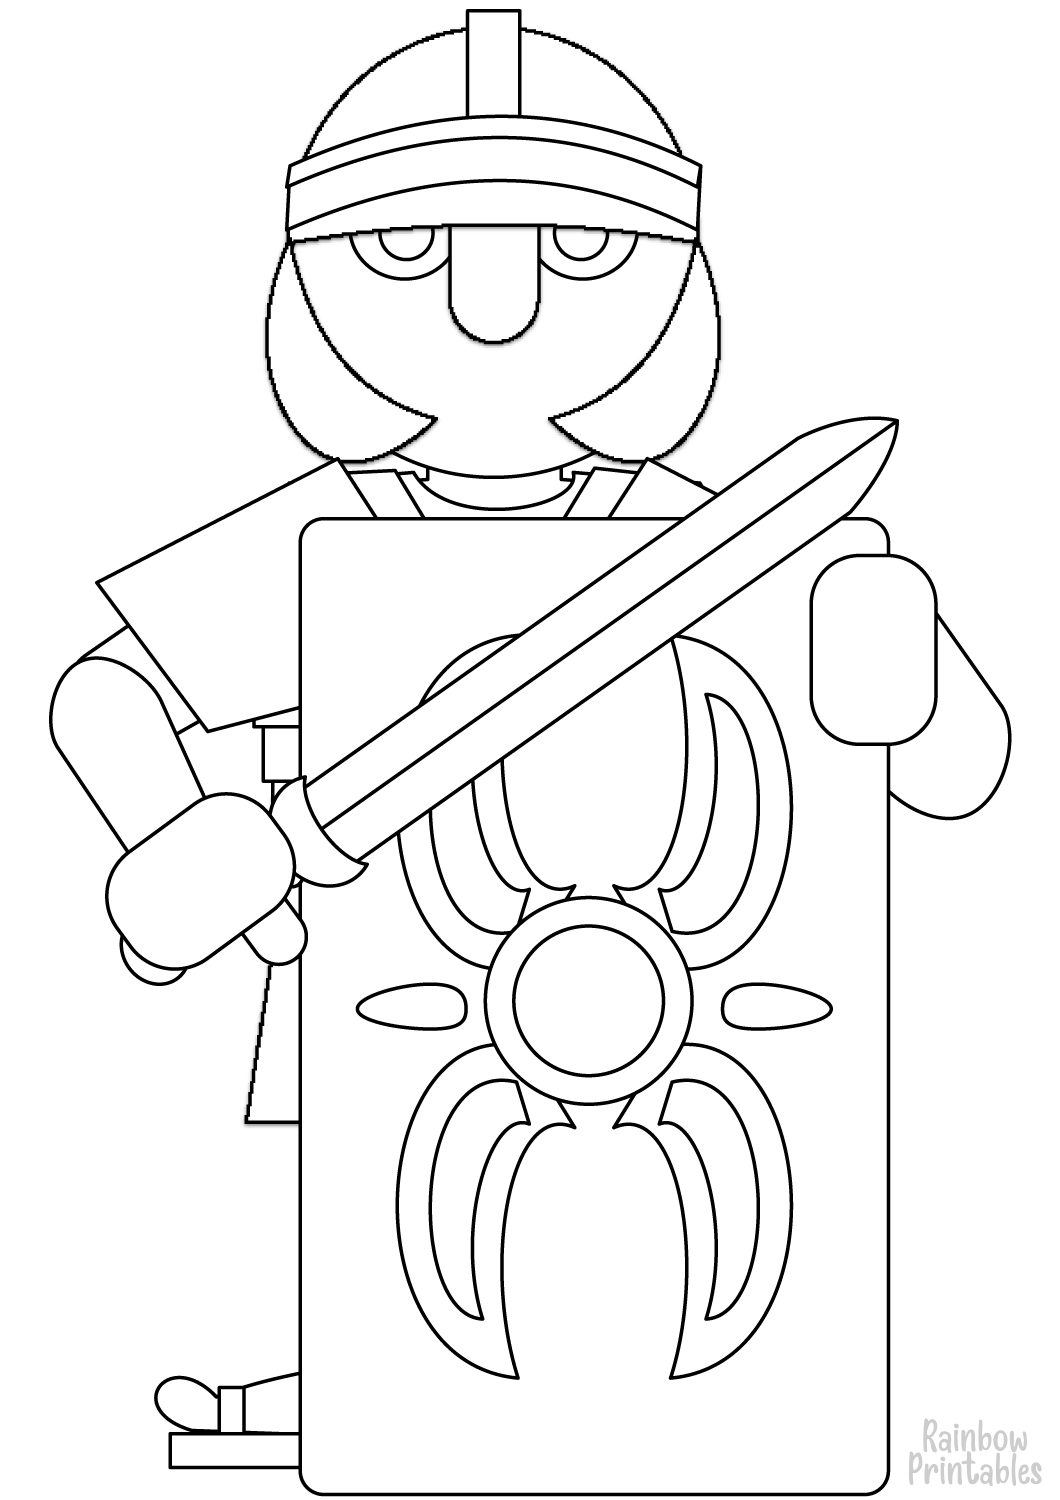 ROMAN KNIGHT SOLDIER Free Clipart Coloring Pages for Kids Adults Art Activities Line Art